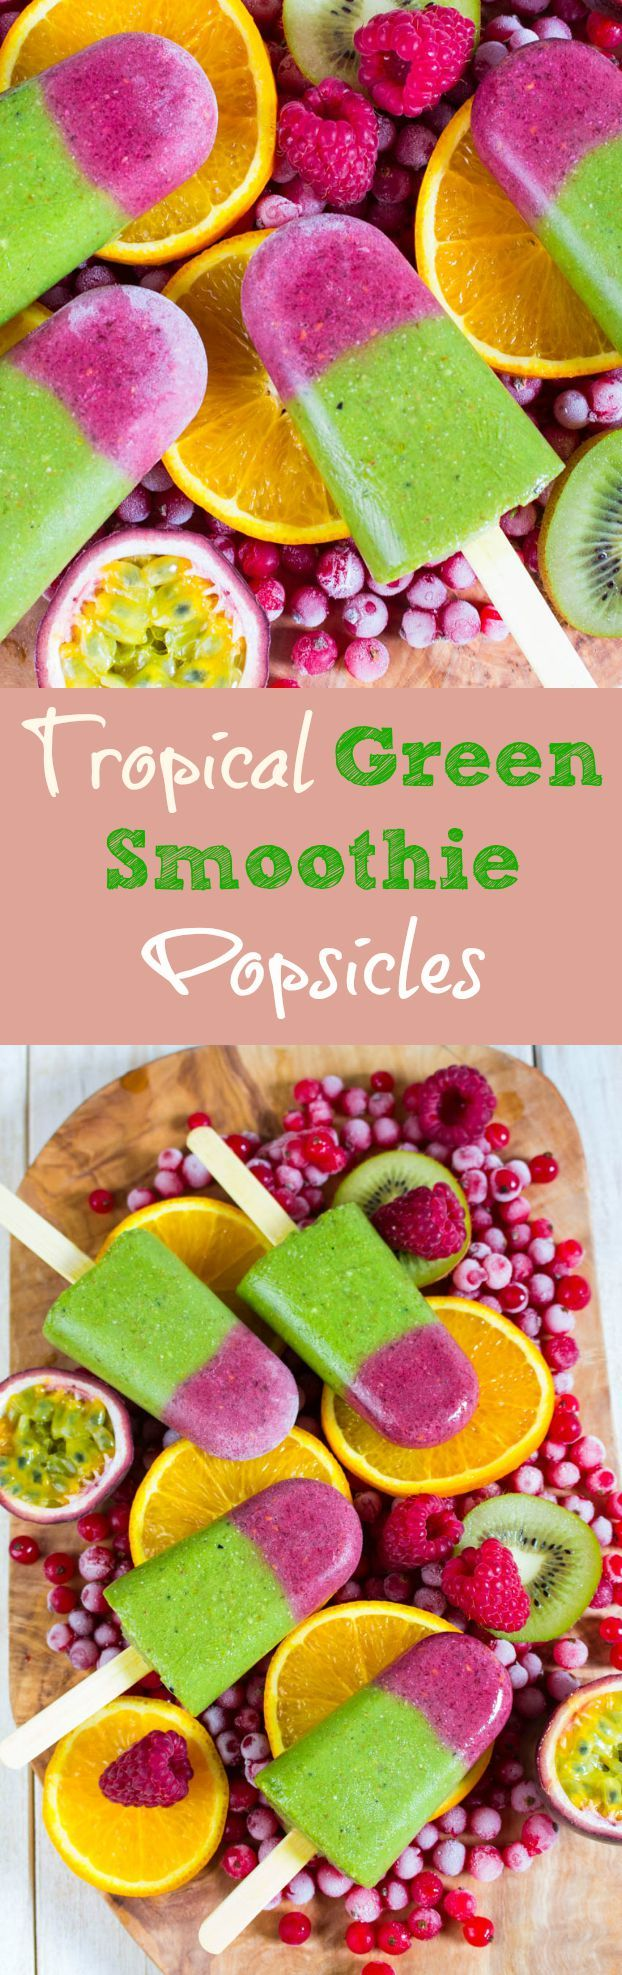 Tropical green smoothie popsicles. The perfect treat for hot summer days! Healthy, delicious, and so refreshing. Find the recipe at veganheaven.org #popsicle #greensmoothie #icecream